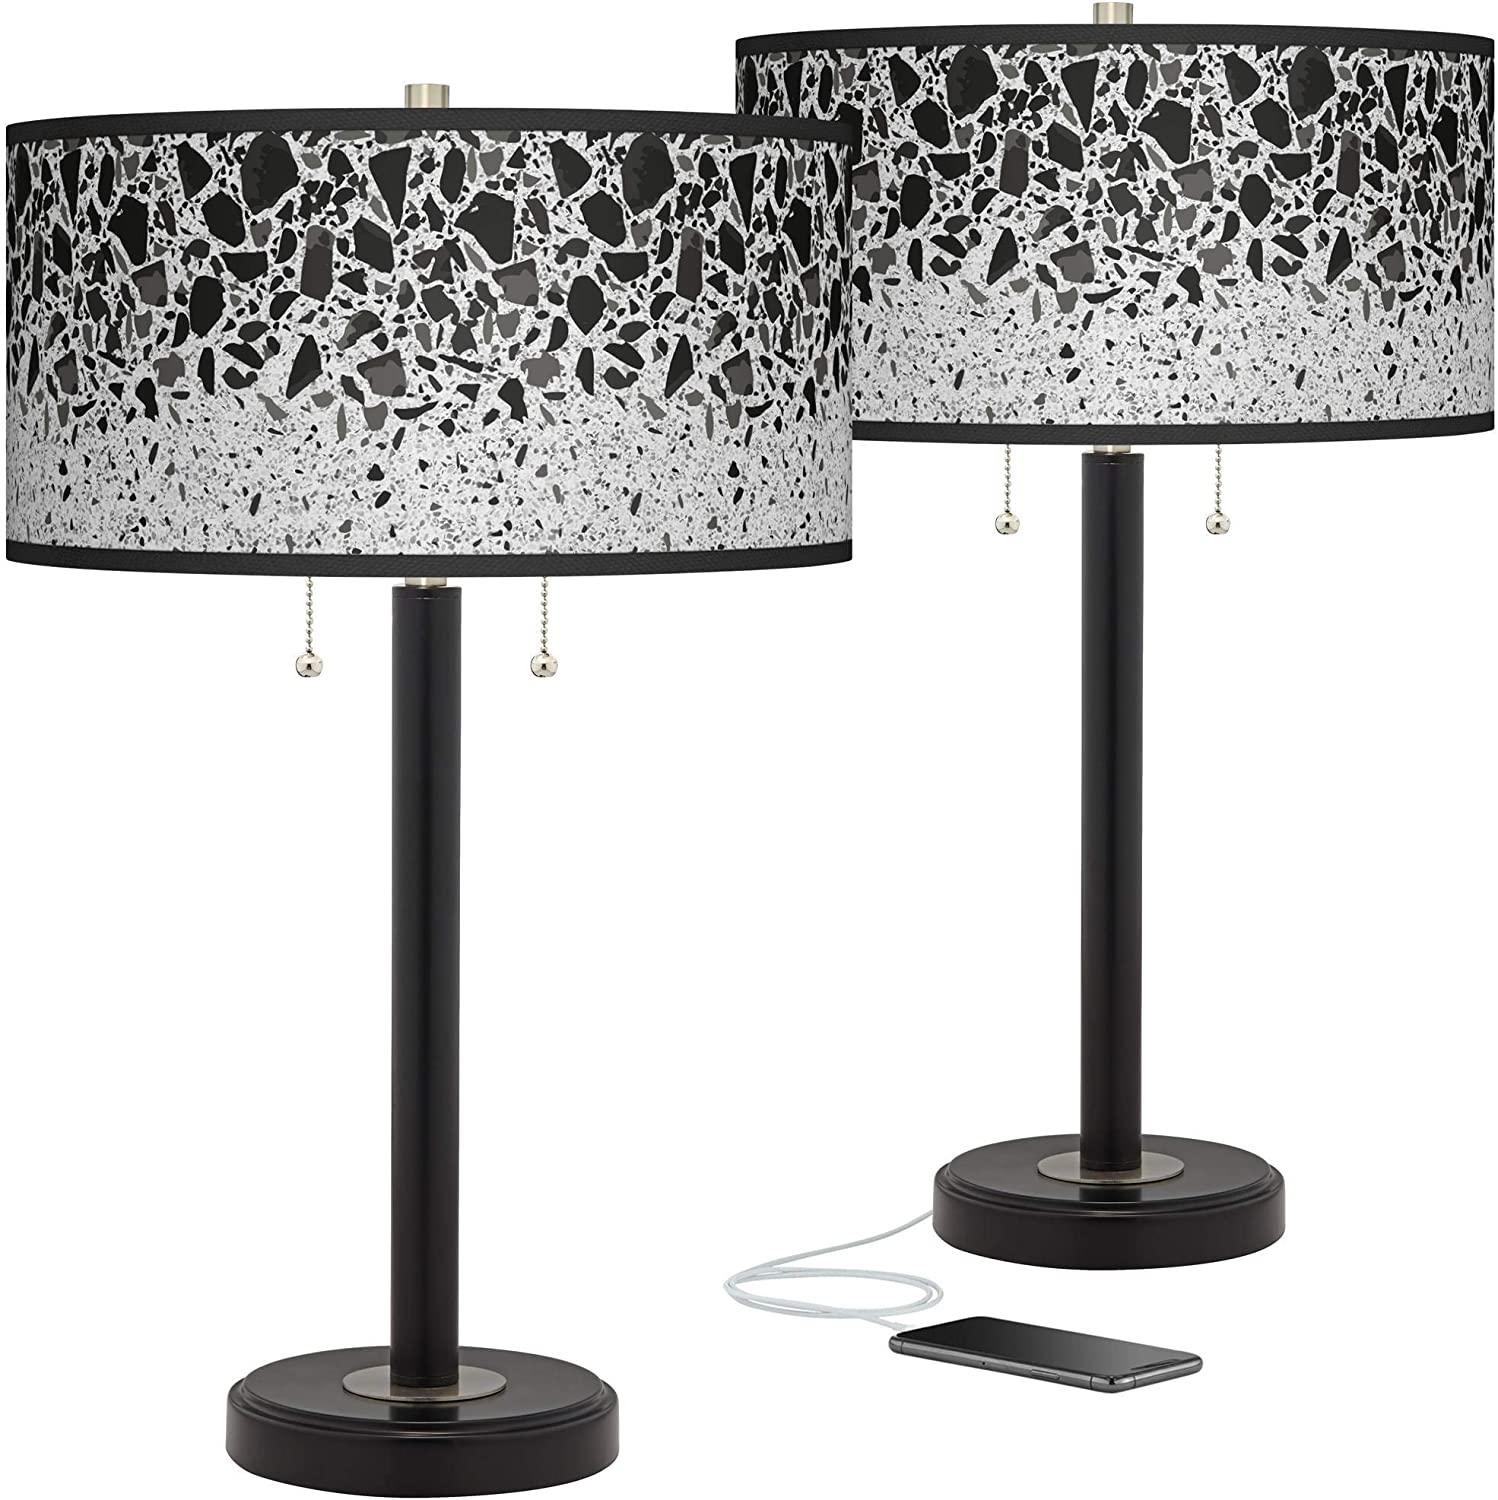 Terrazzo Arturo Black Bronze USB Table Lamps G Online limited product 2 Sales results No. 1 of Giclee Set -